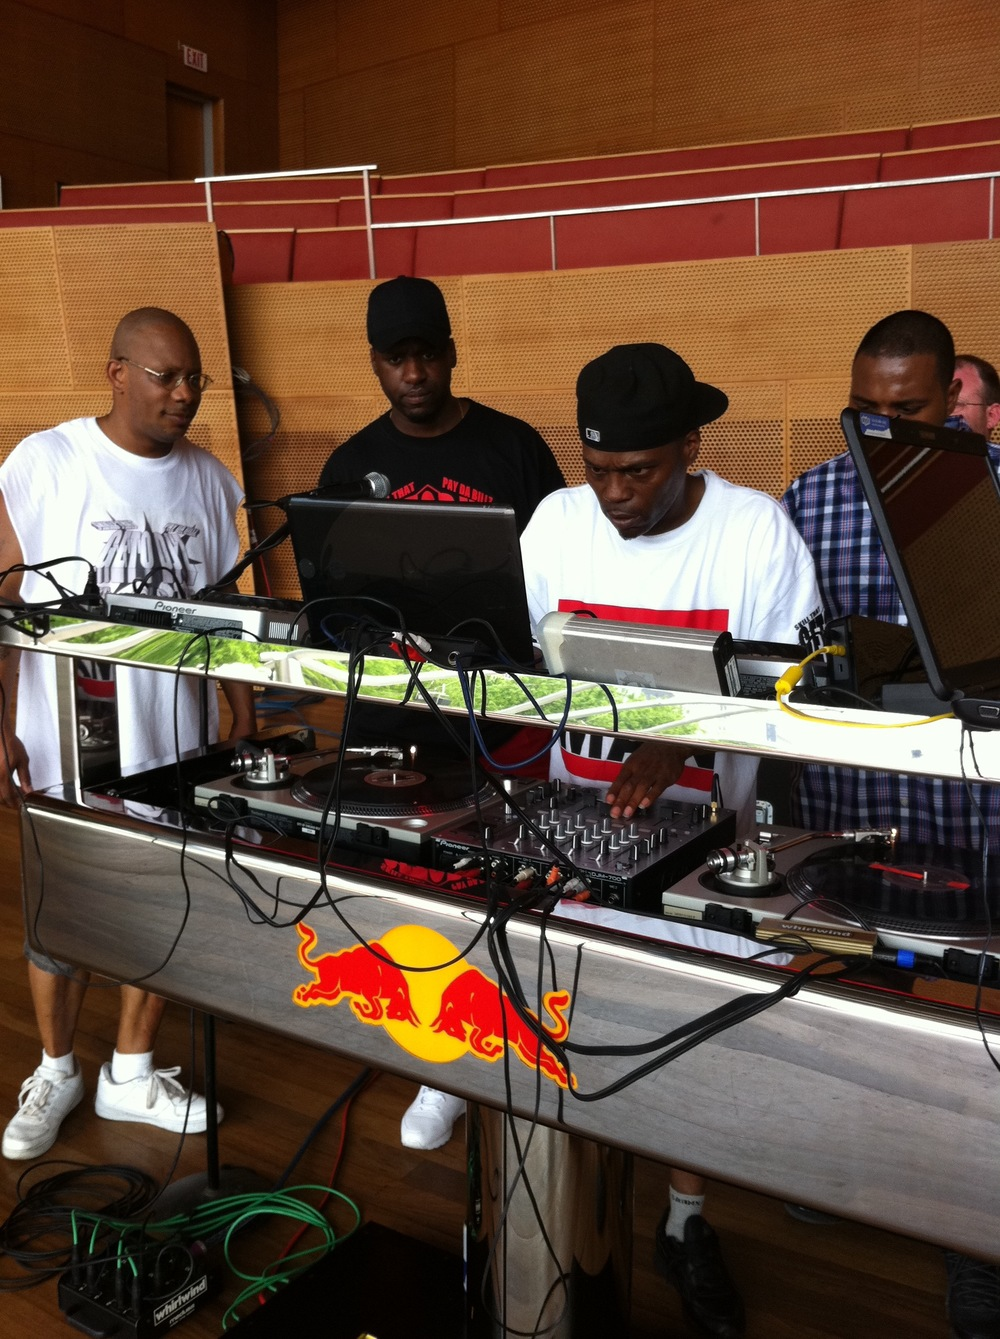 Event Producer and Co-Curator for Audio Picnic music series at the Jay Prizker Pavilion in Millennium Park. Red Bull session with DJ Rashad and Traxman in photo.